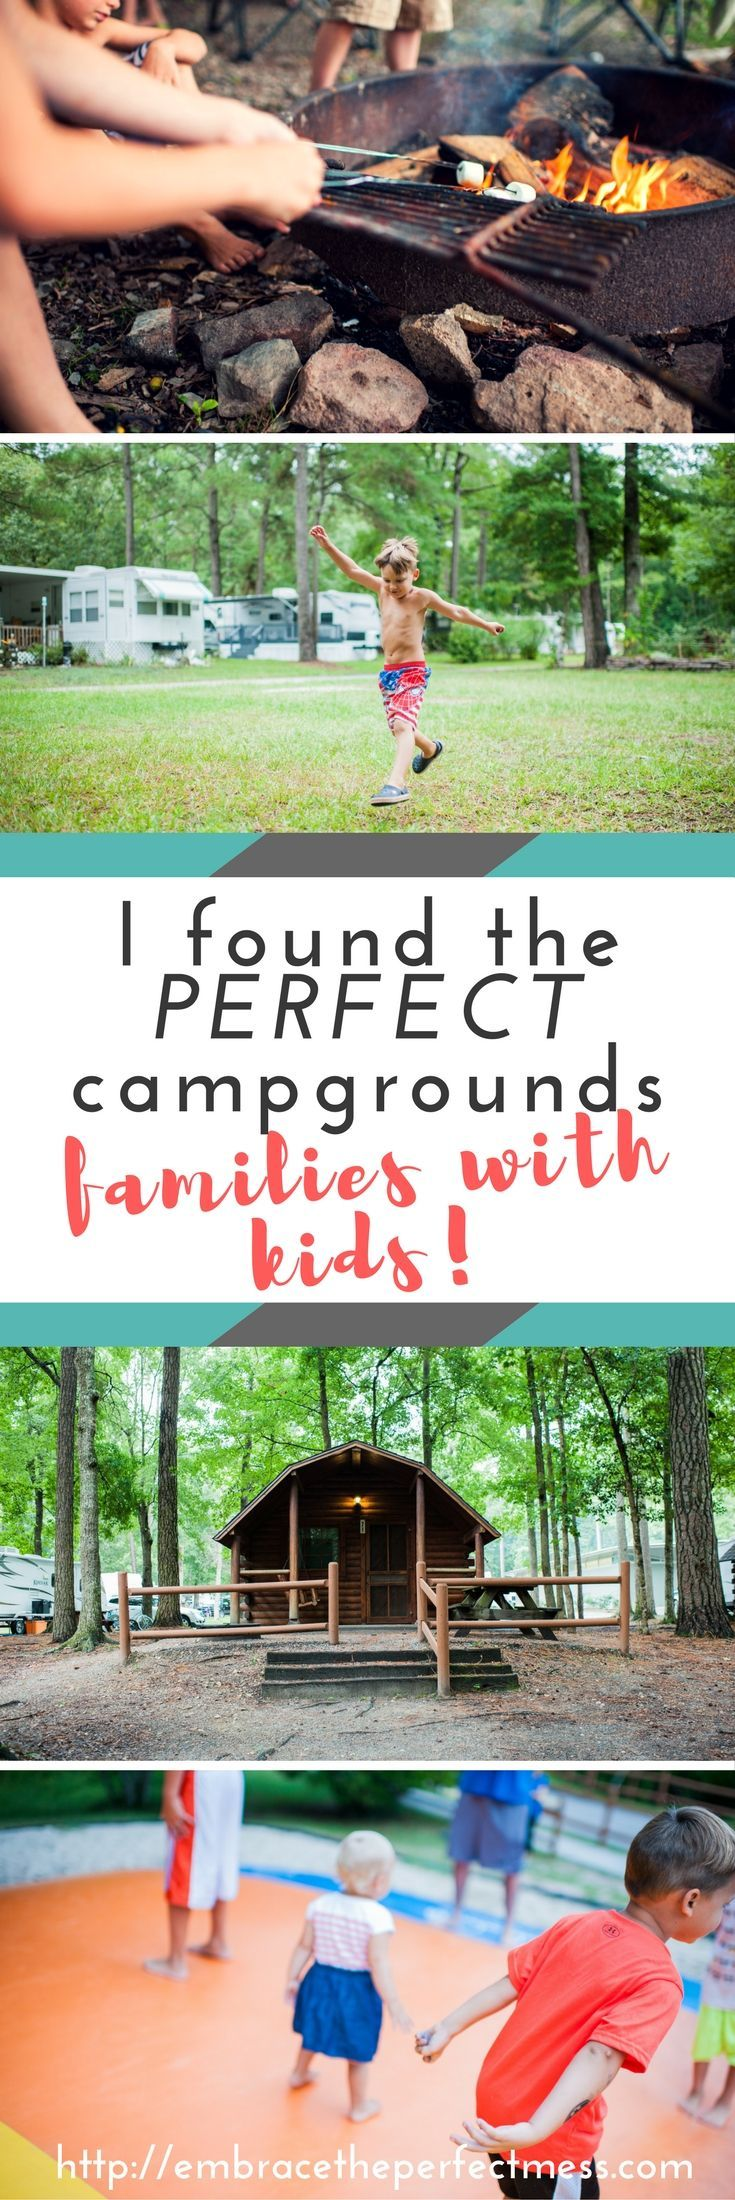 planning a family vacation with kids can be stressful. here are 6 reasons a family vacation at a KOA may be the best campgrounds for families with kids! #campingwithkids #kampgroundsofamerica #tipsforfamilycampingtrips #traveltipsforfamilies #campinghacksforfamilies #embracetheperfectmess